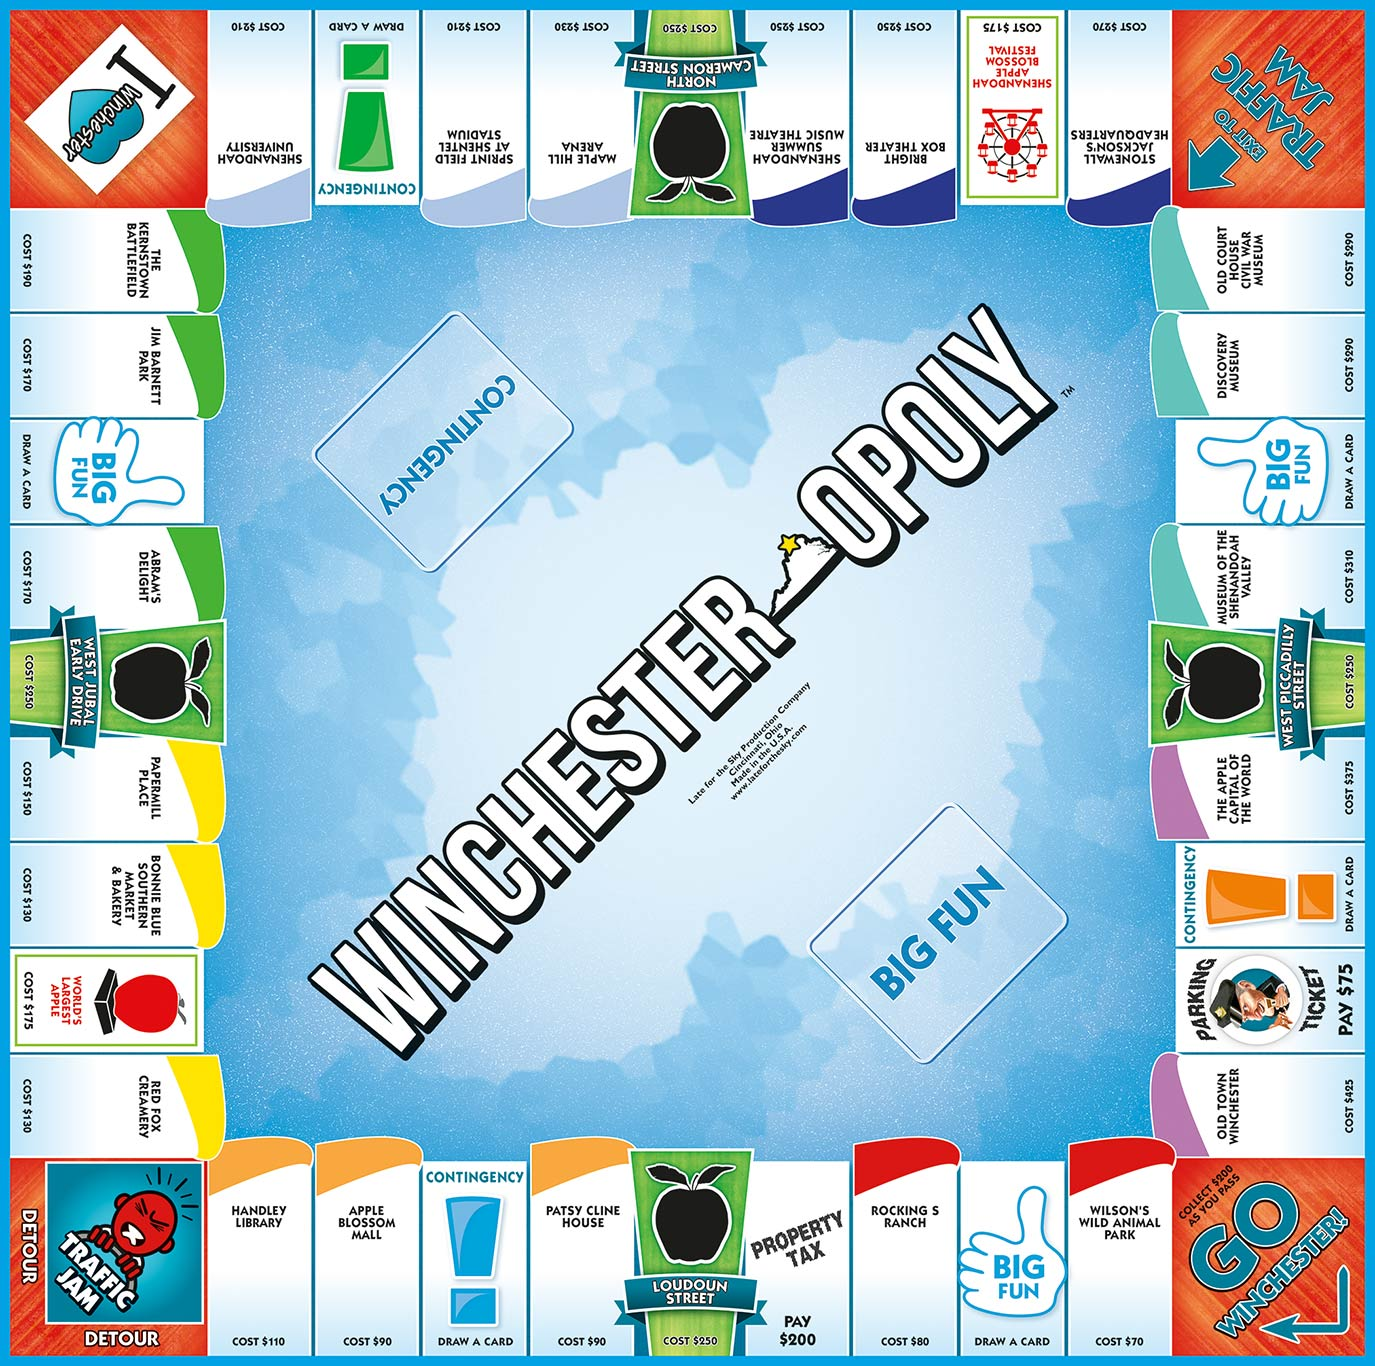 WINCHESTER-OPOLY Board Game